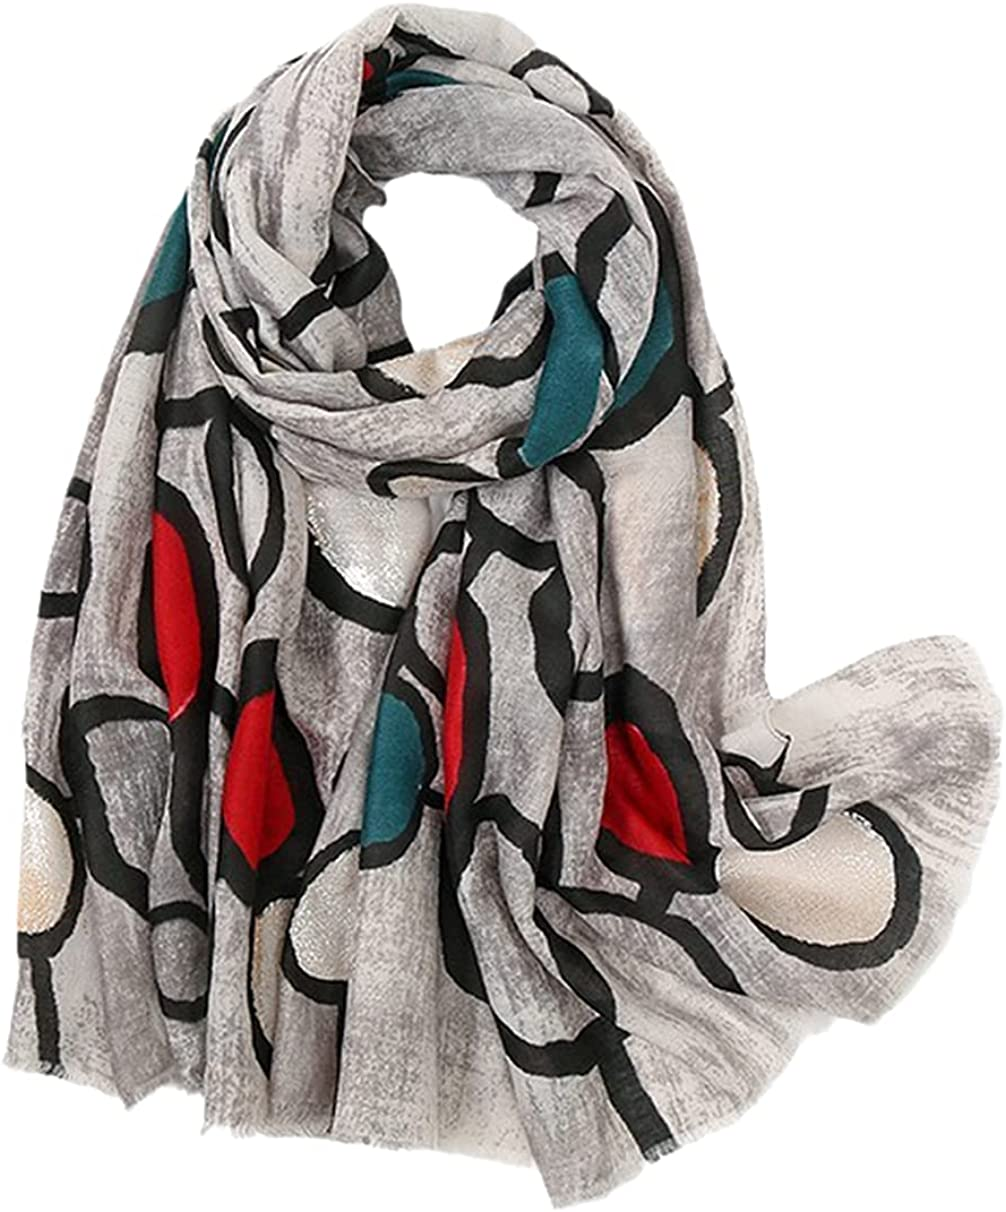 Woman National products Printed Cotton Scarf Spring Linen Head Shawl Special Campaign Fe Long